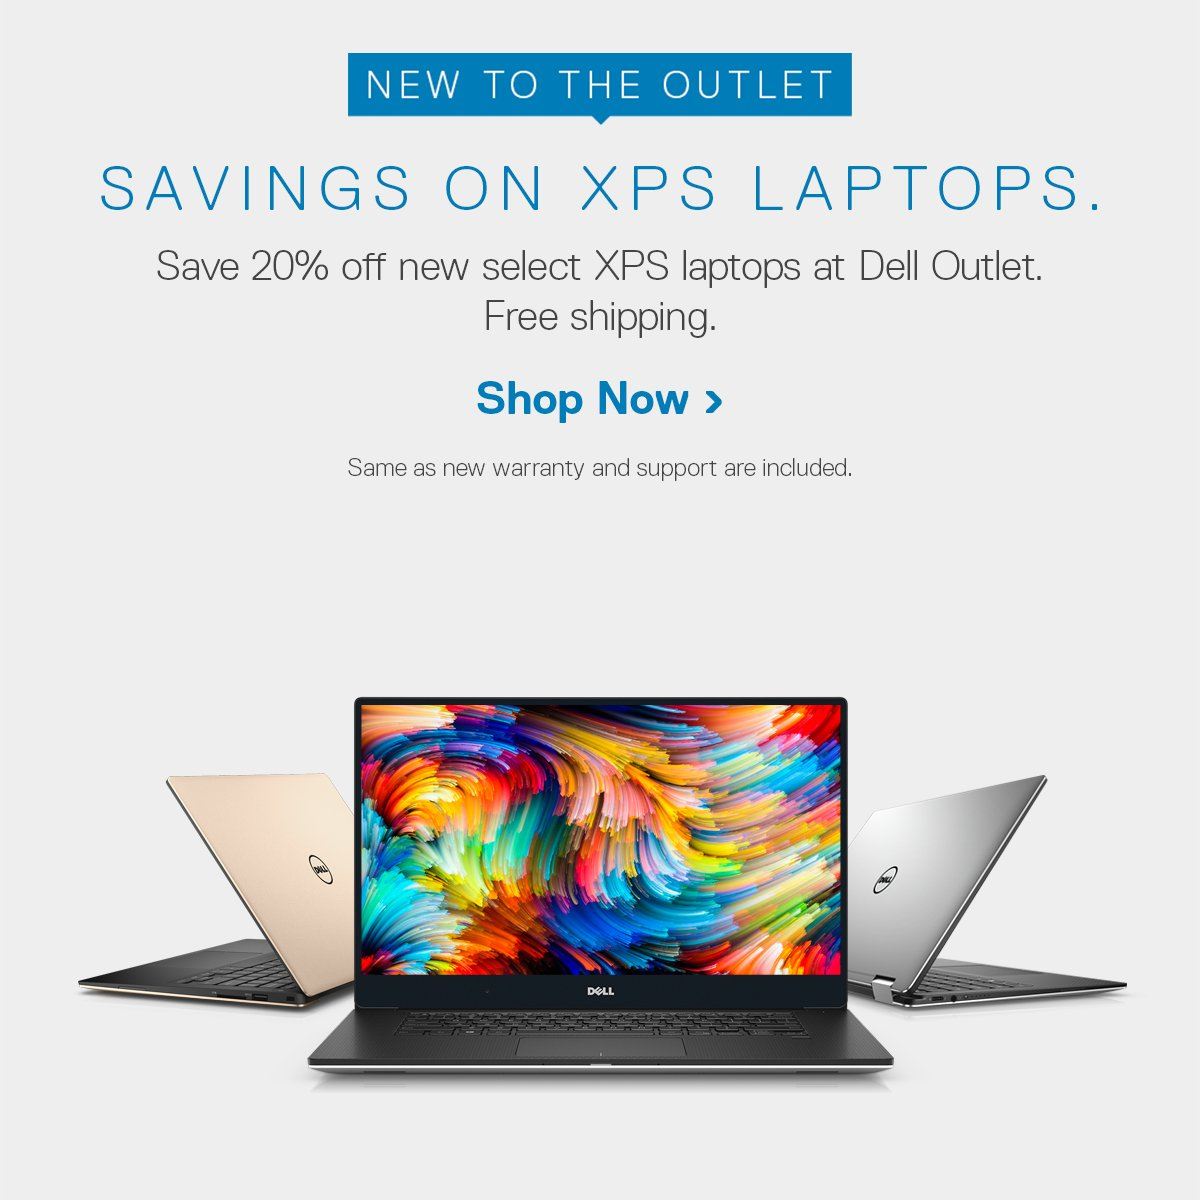 Dell xps 13 coupon uk